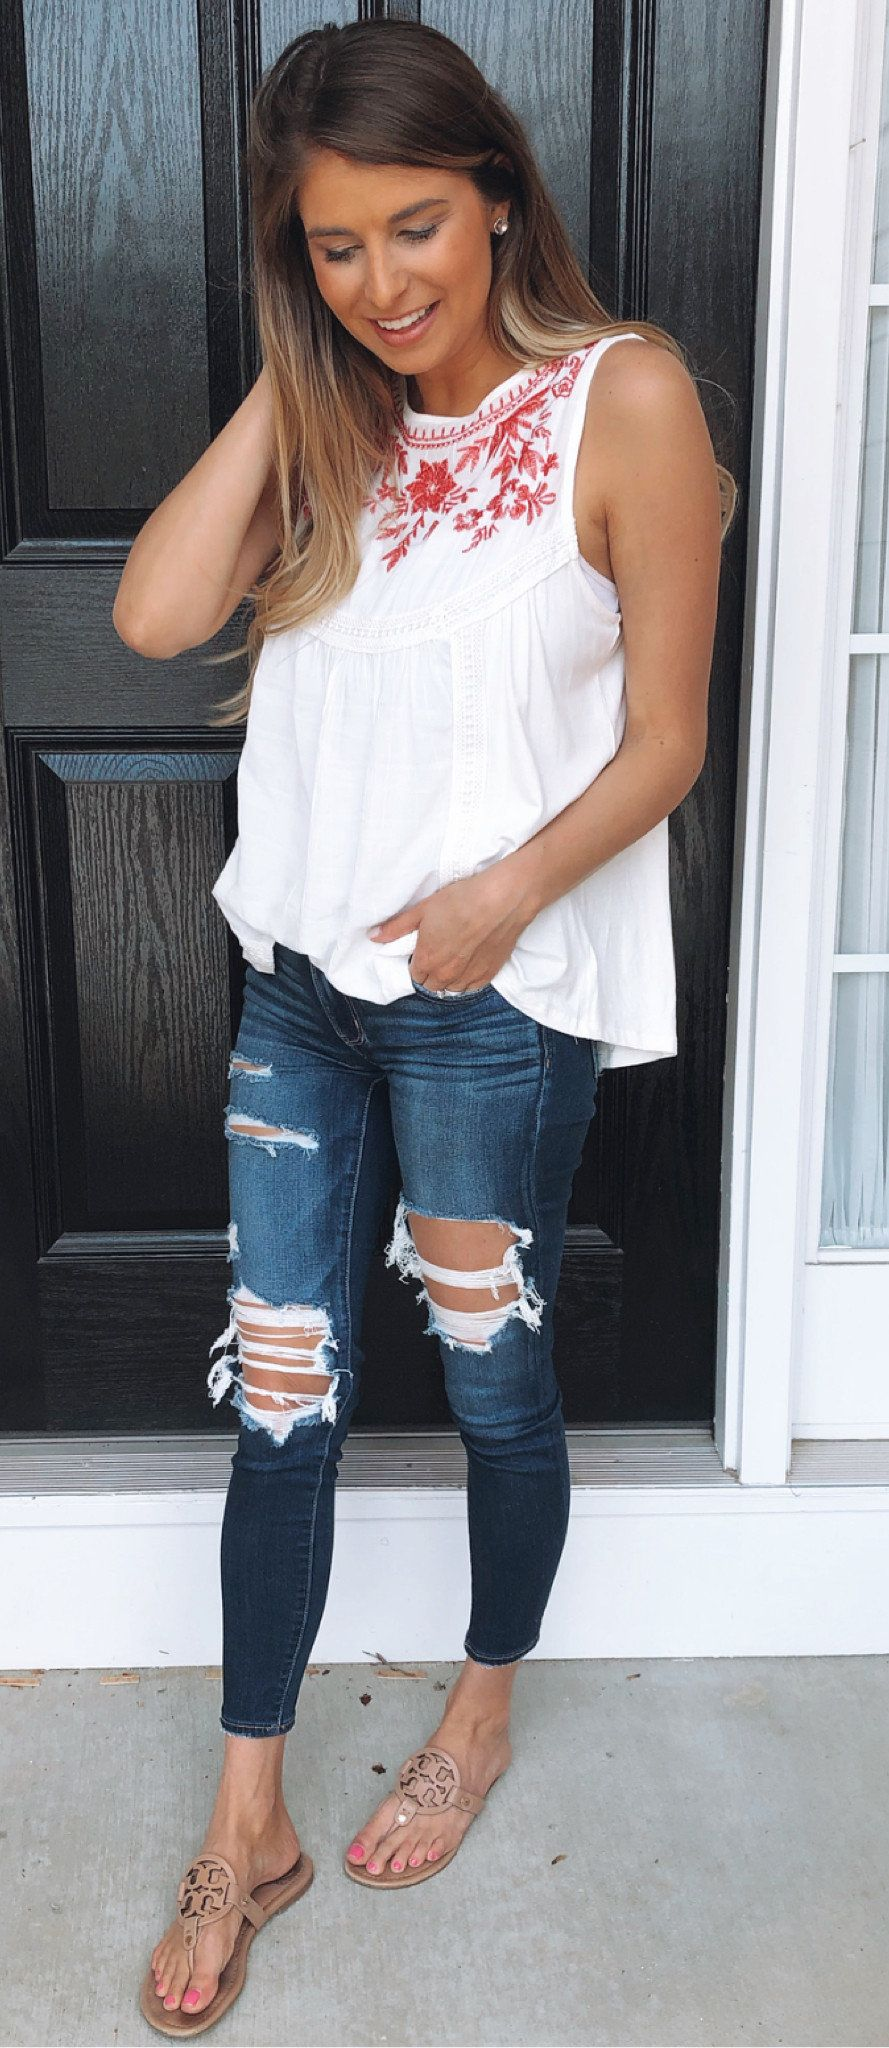 white and red floral sleeveless top #summer #outfits